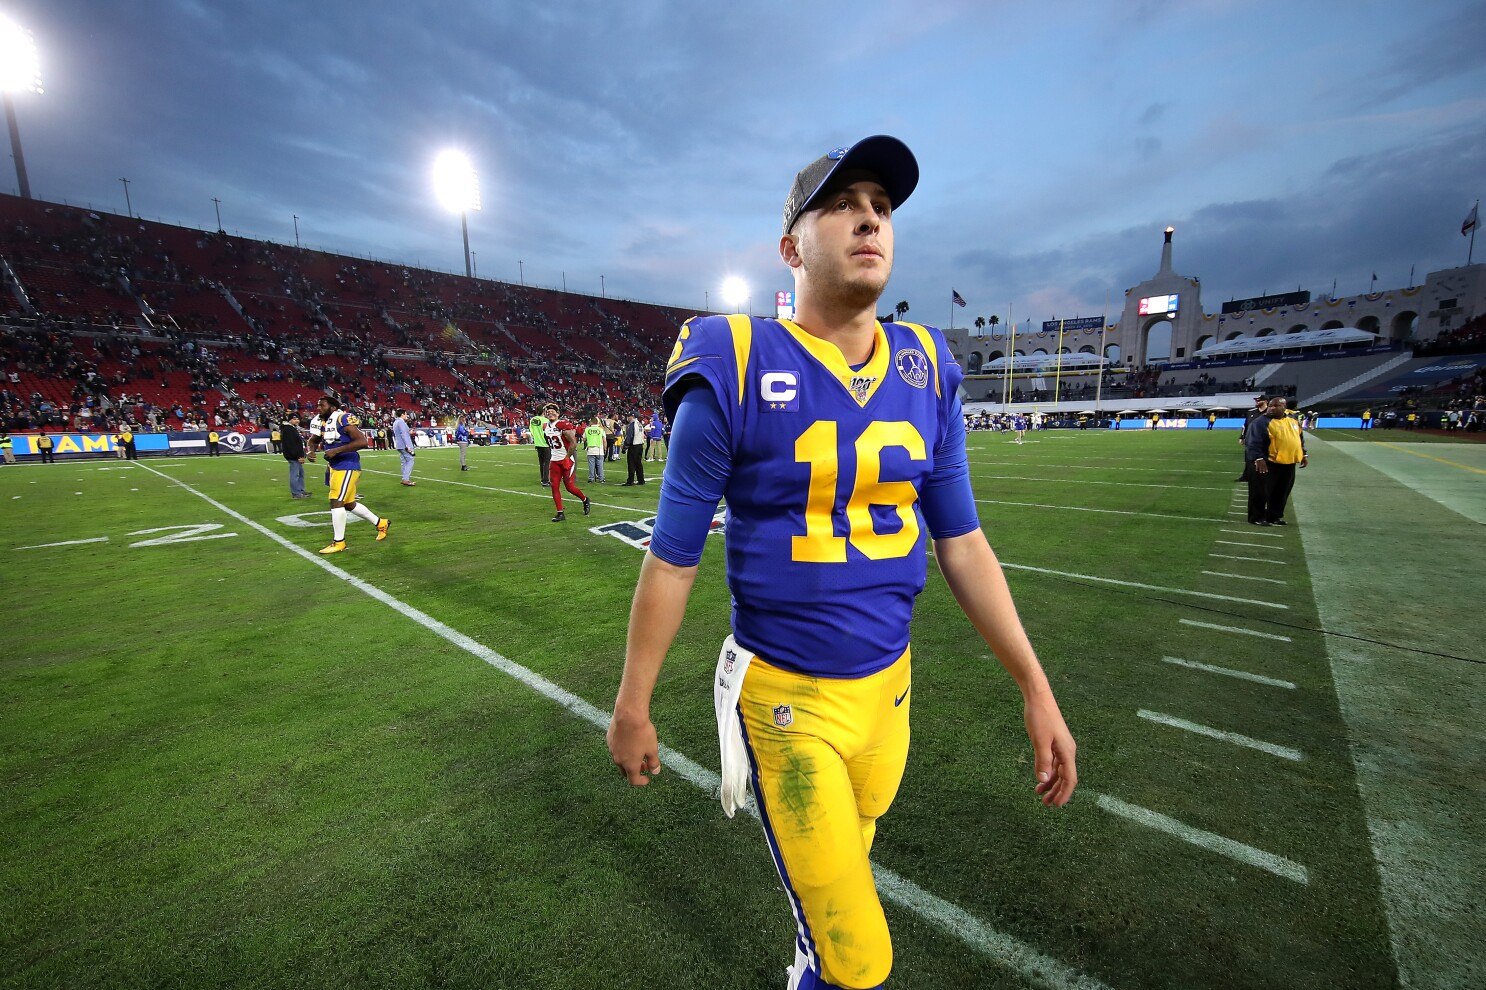 Rams Jared Goff Is Looking Forward To Fresh Perspectives Los Angeles Times